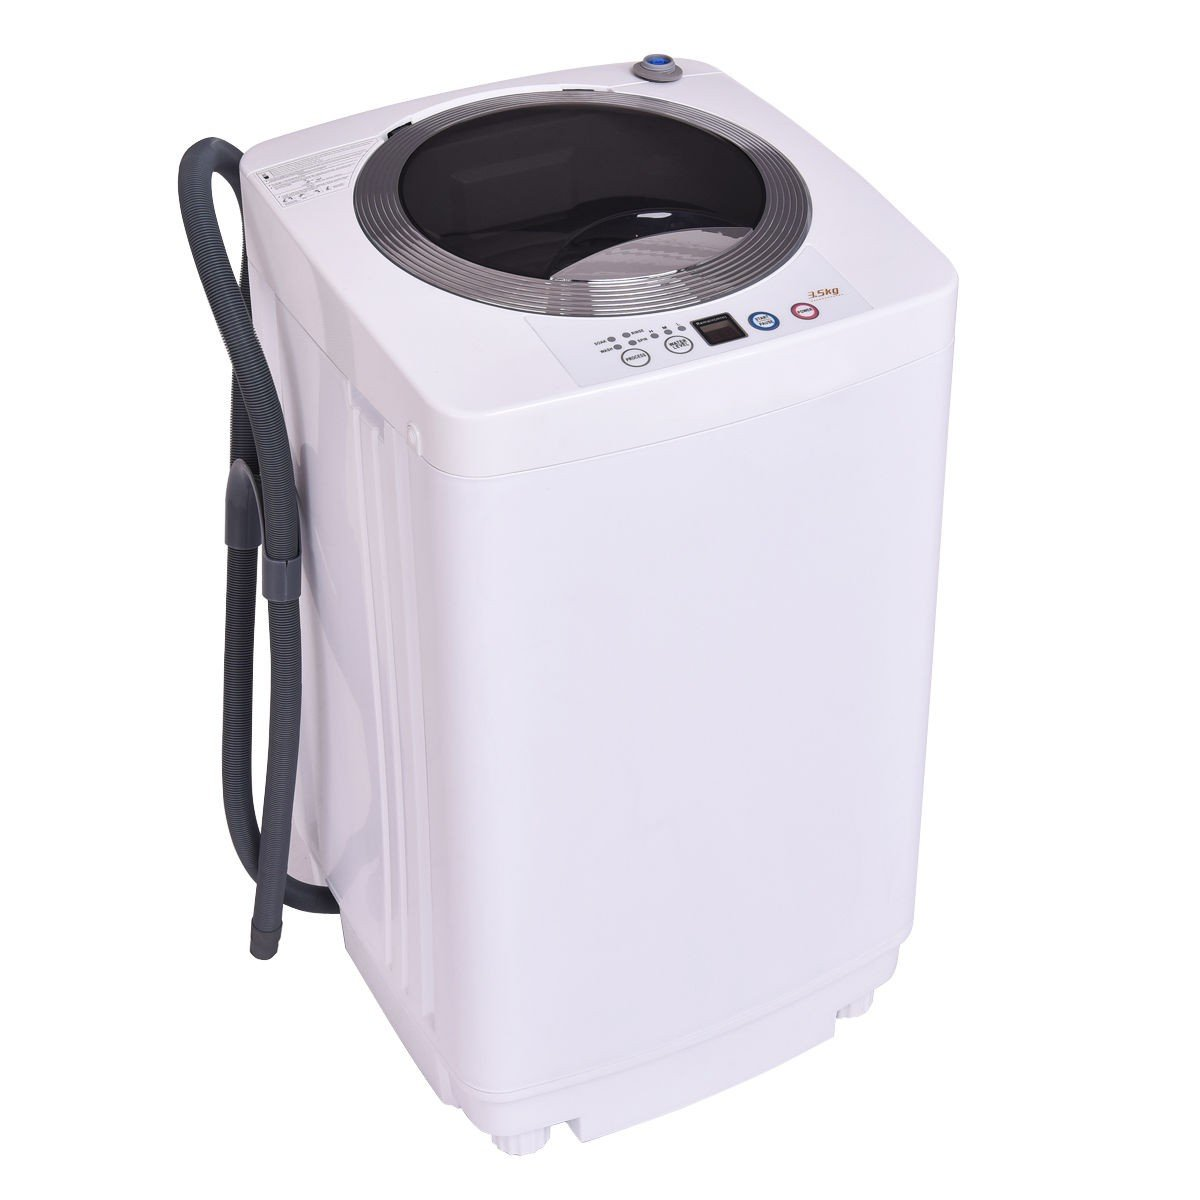 7.7 lbs Automatic Laundry Washing Machine - By Choice Products